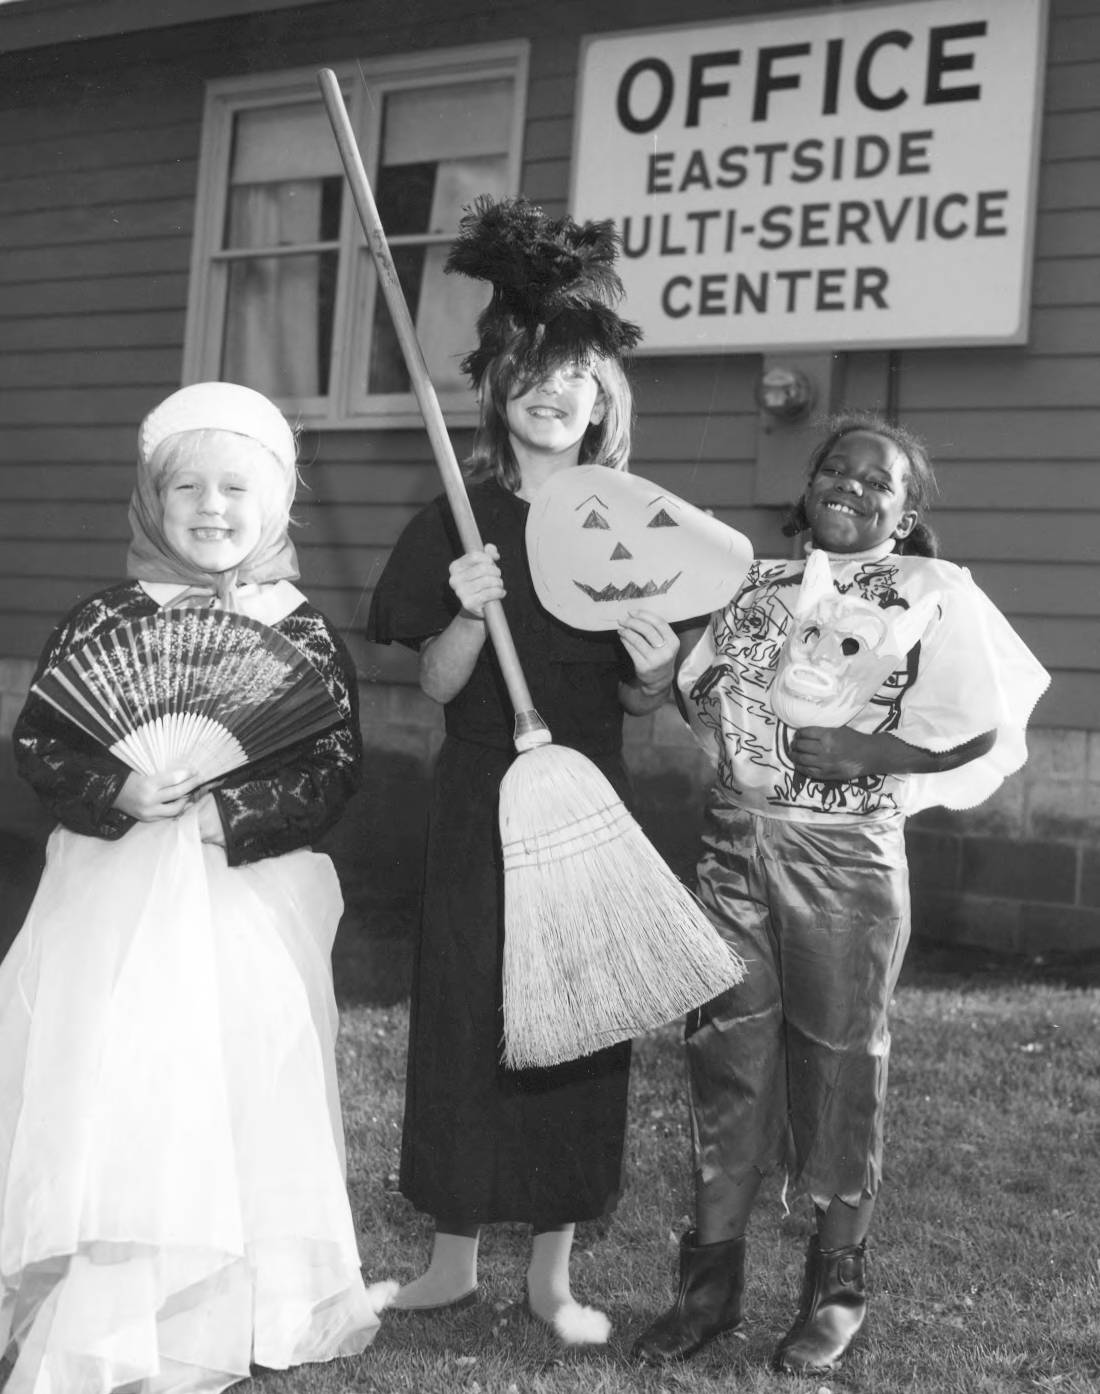 "Description""Official Witch"" Chari-Kee Rowell, age 10, is flanked by her court, ""Official Princess"" Darcy Orr and ""Official Devil"" Janet Barr, as she prepares to lead the first Eastside Halloween Torchlight Parade which will be held on October 31, 1968. They are standing in front of the office of the Eastside Multi-Service Center, an arm of the Tacoma-Pierce County Opportunity & Development, Inc. Alice Dunn, director, had recently announced that the Eastside Youth Center in Salishan, destroyed by fire on March 30th, would be open in time for the ""biggest Halloween party ever held in the Eastside."" An anonymous donor had just pledged $2,000 to complete the building fund. Hundreds of children dressed as goblins, ghosts and fairy-tale creations were expected to assemble at Gault and Roosevelt elementary schools to march in two torchlight one-mile parades culminating at the new Eastside Youth Center where they would bob for apples, hunt for pennies in the hay, eat pies and have their costumes judged for prizes."